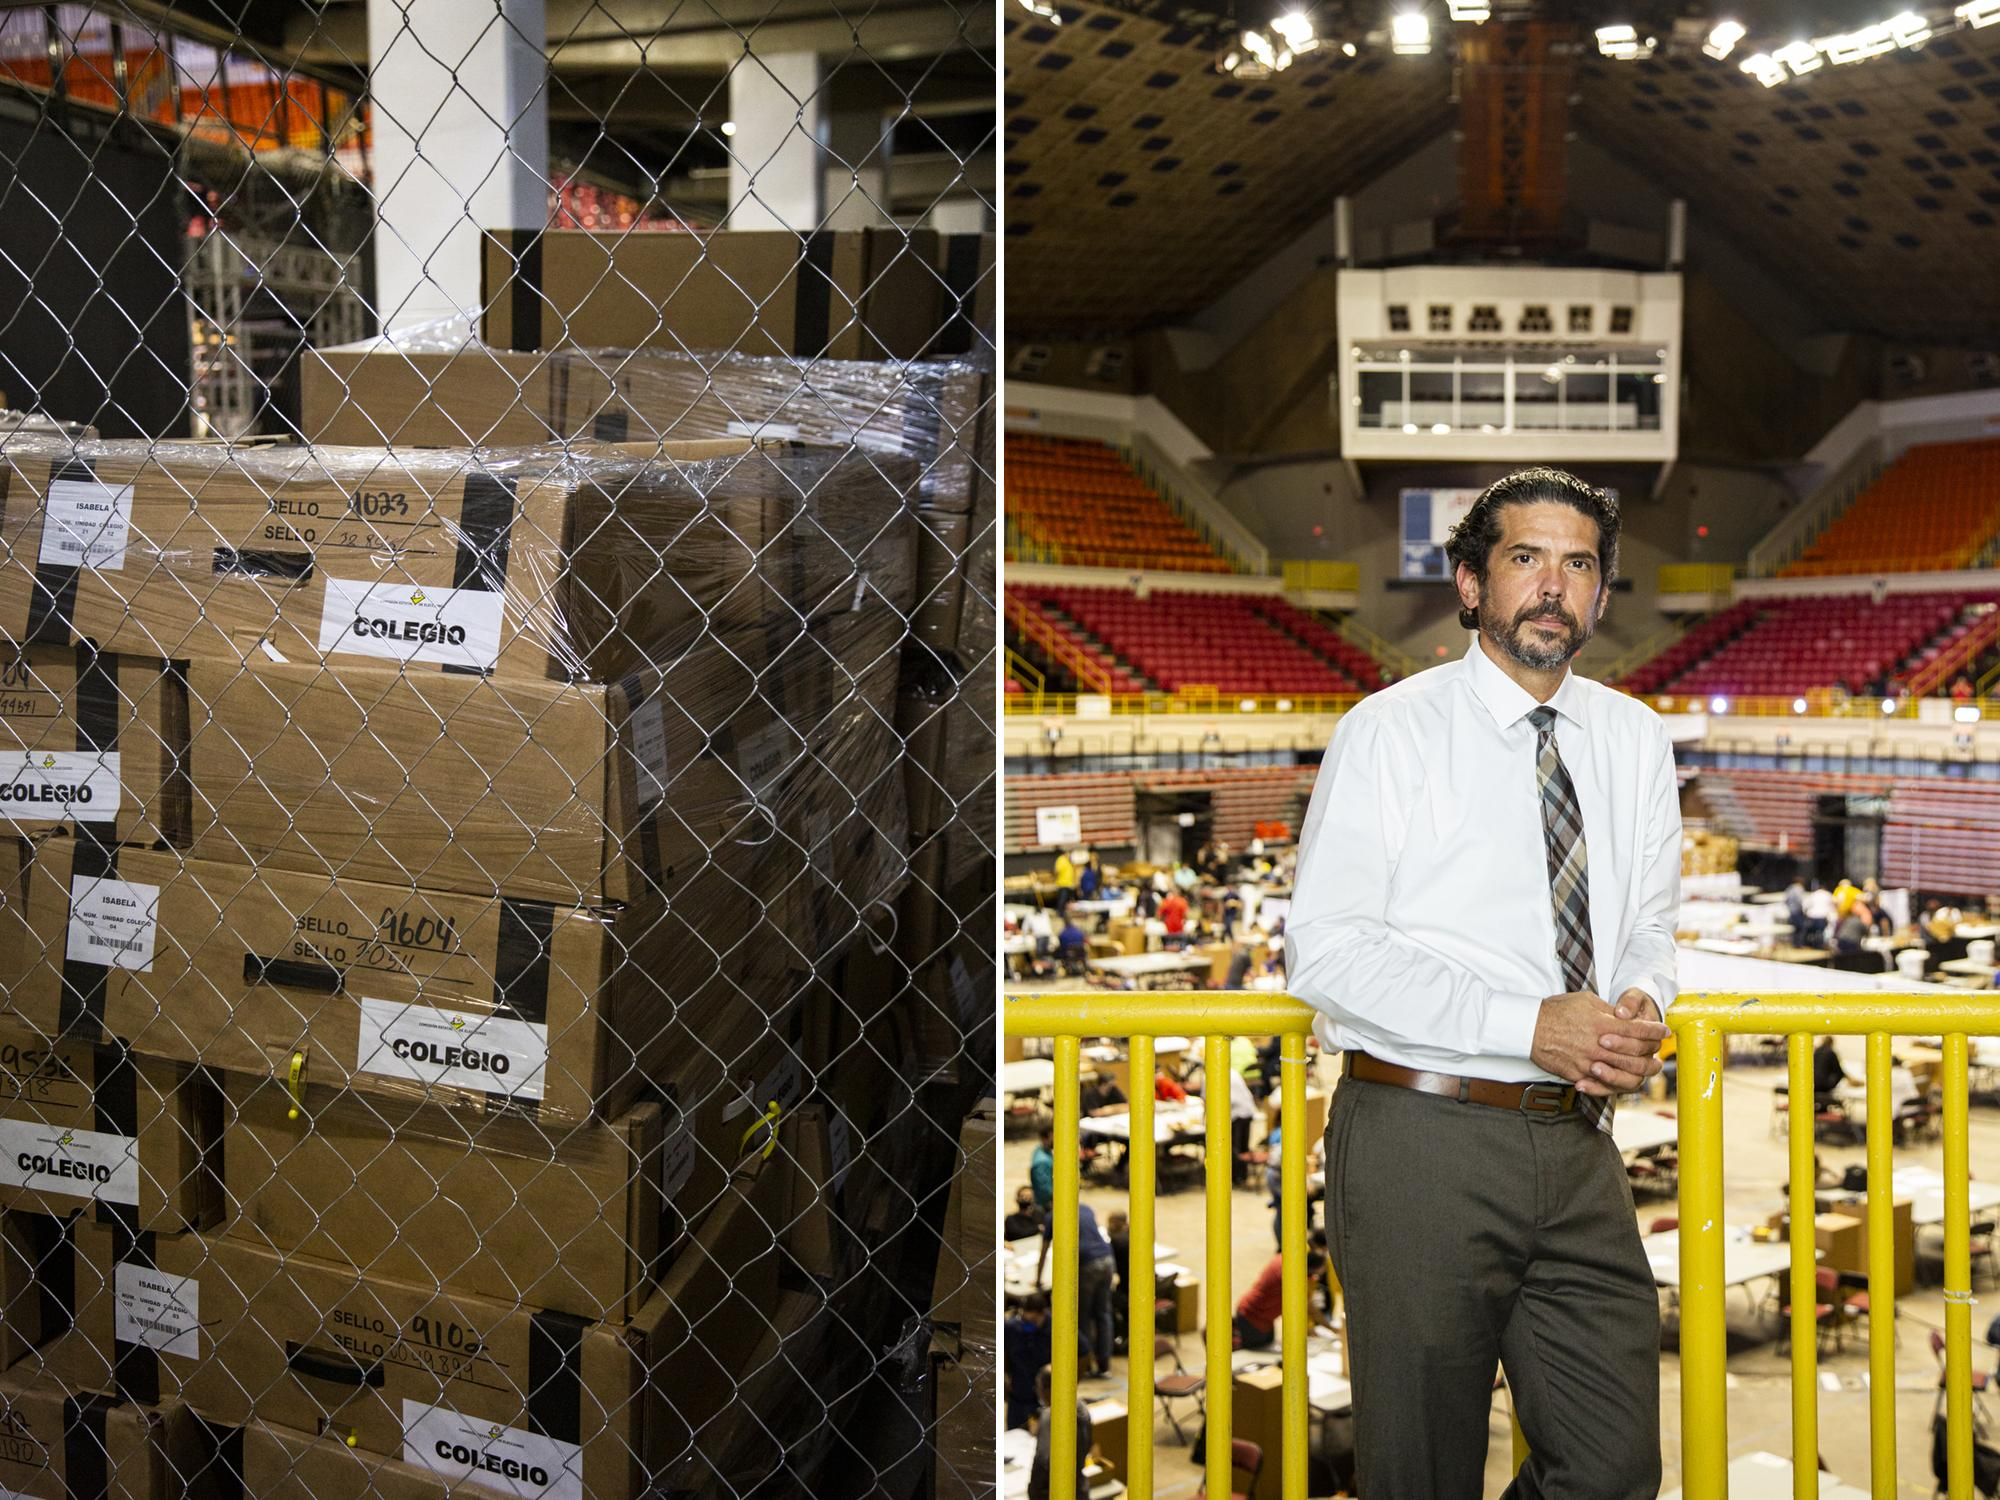 Francisco Rosado Colomer, President of the State Electoral Commission, poses for a photo at the Roberto Clemente Coliseum in San Juan, P.R., on Nov. 11, 2020. A week after the island's general election over 125 boxes of uncounted ballots surfaced. (Erika P. Rodriguez for the New York Times)